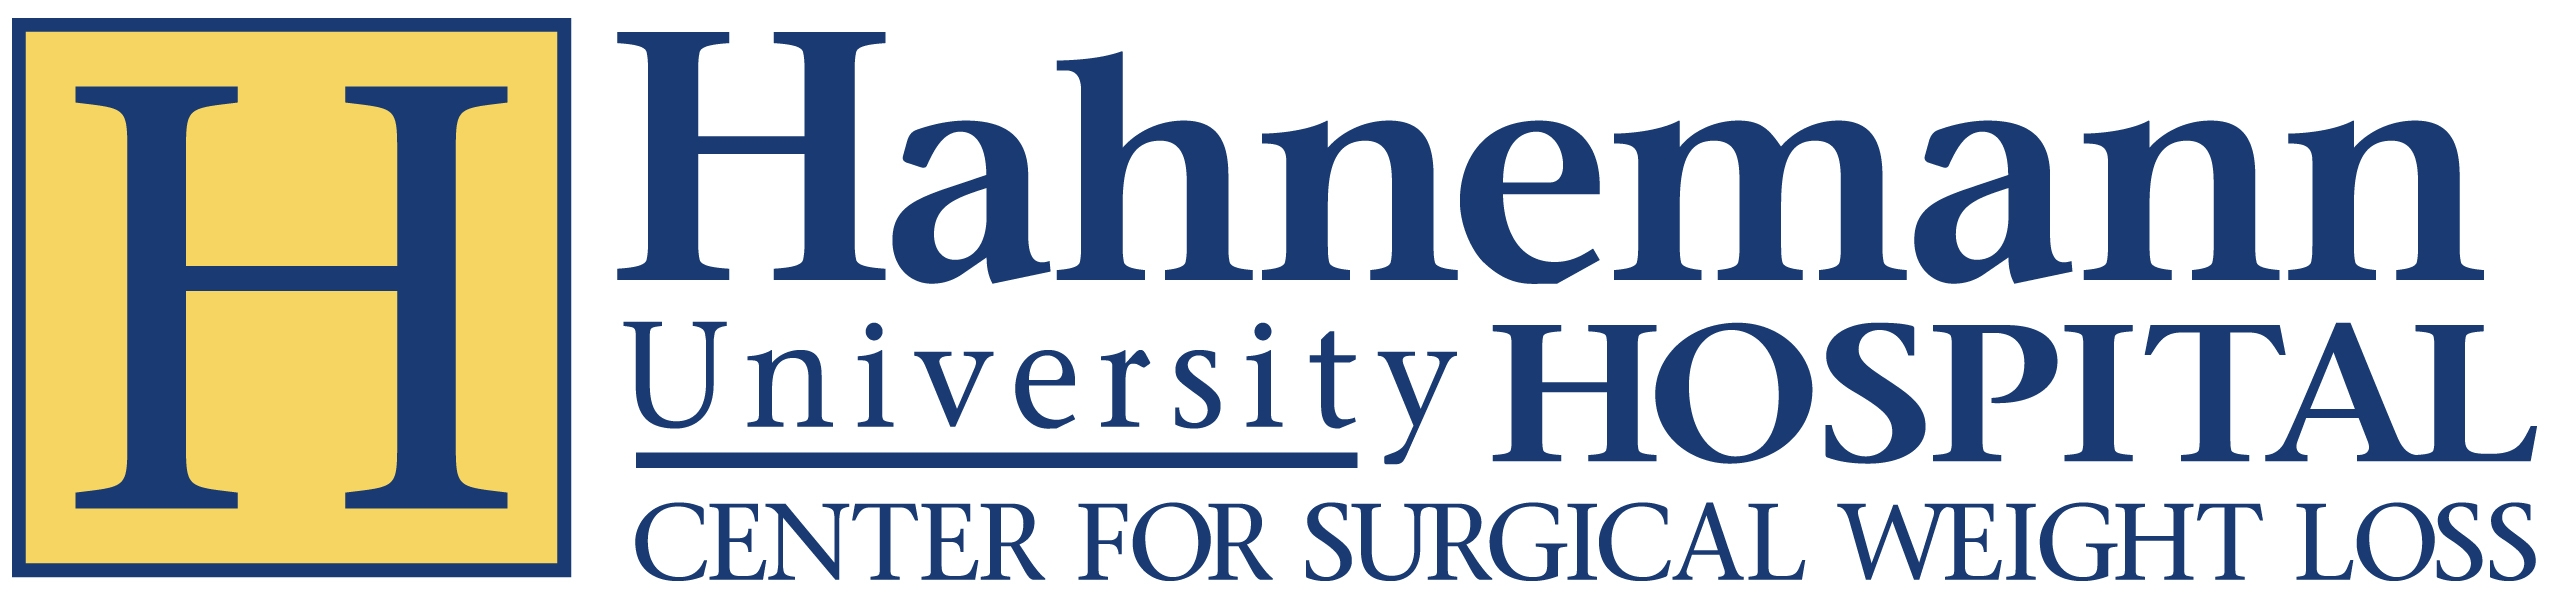 Center for Surgical Weight Loss at Hahnemann University Hospital